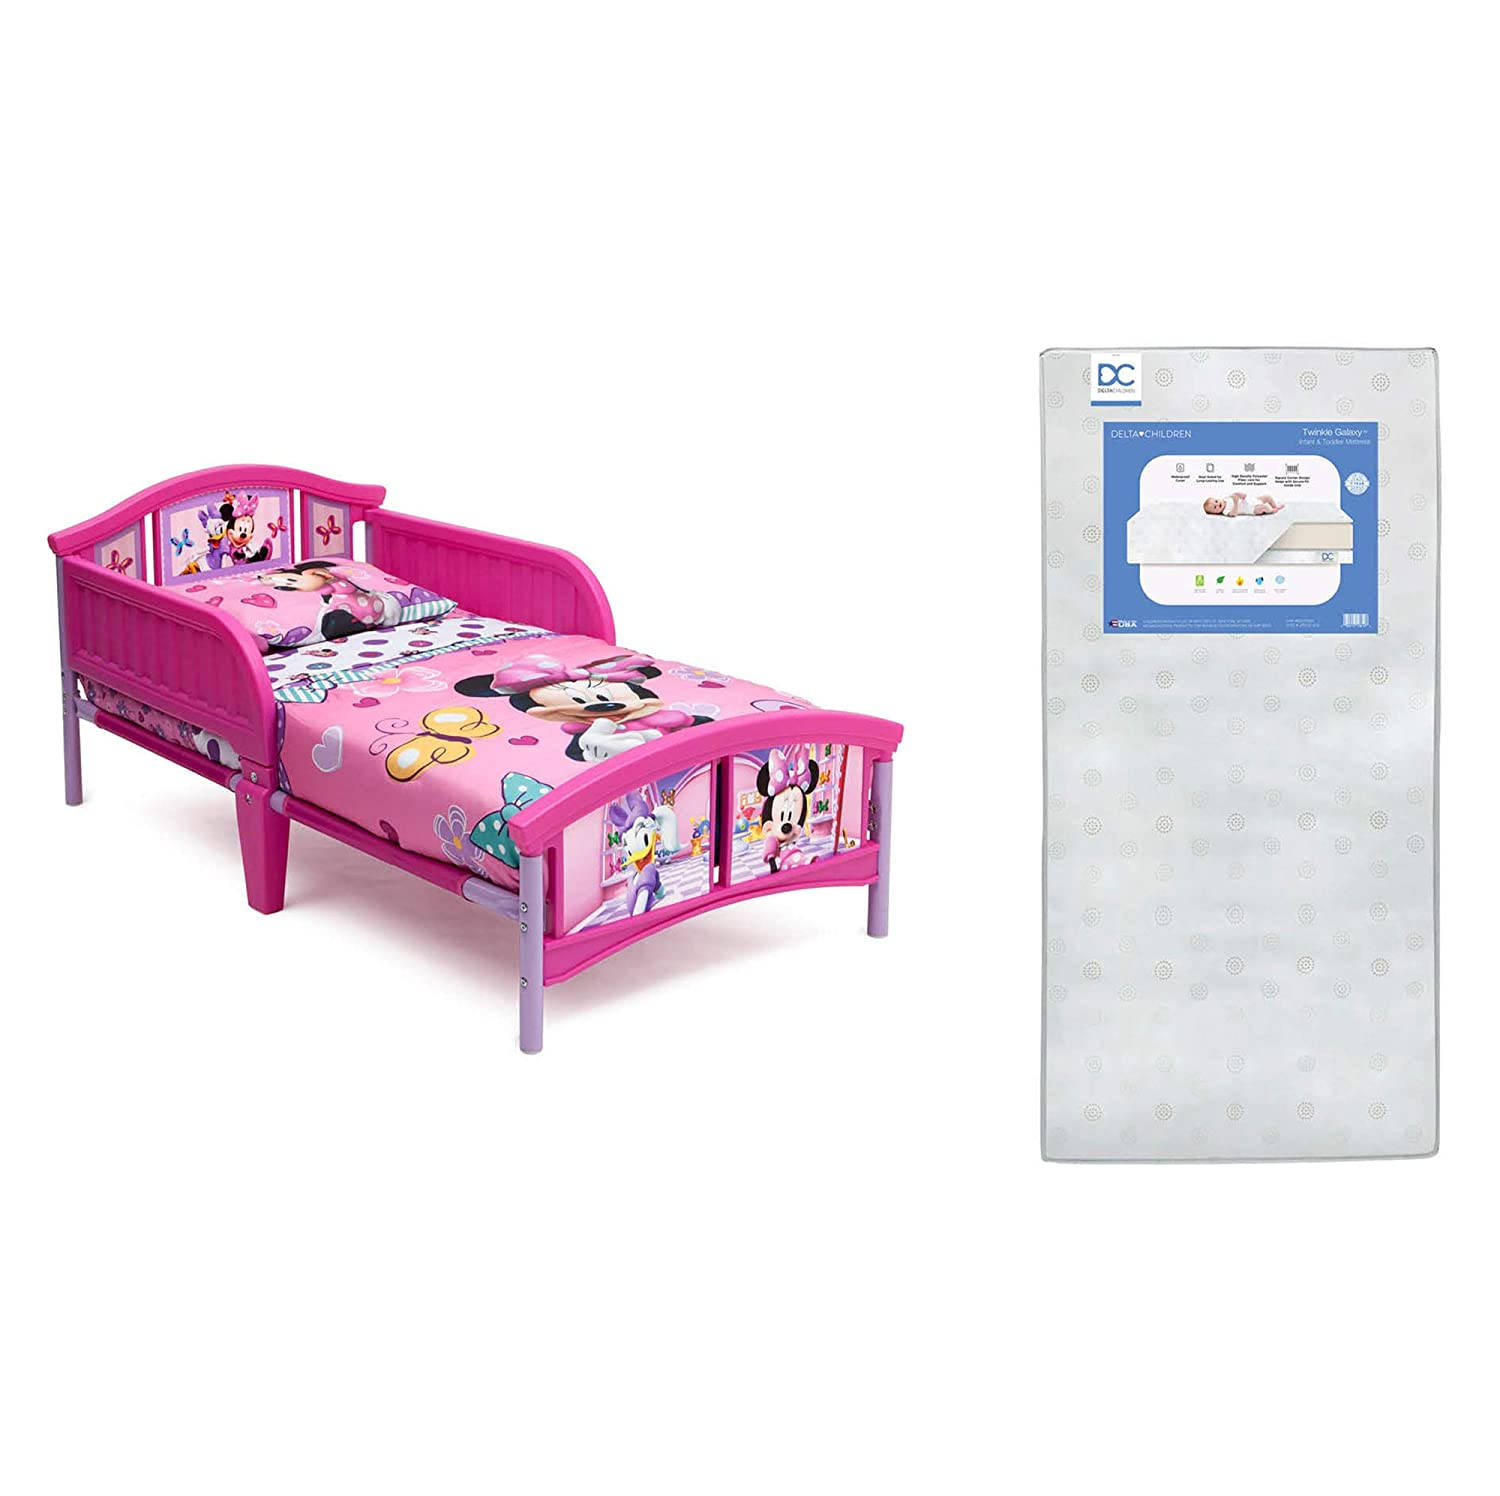 Delta Children Plastic Toddler Bed, Disney Minnie Mouse + Delta Children Twinkle Galaxy Dual Sided Recycled Fiber Core Toddler Mattress (Bundle)